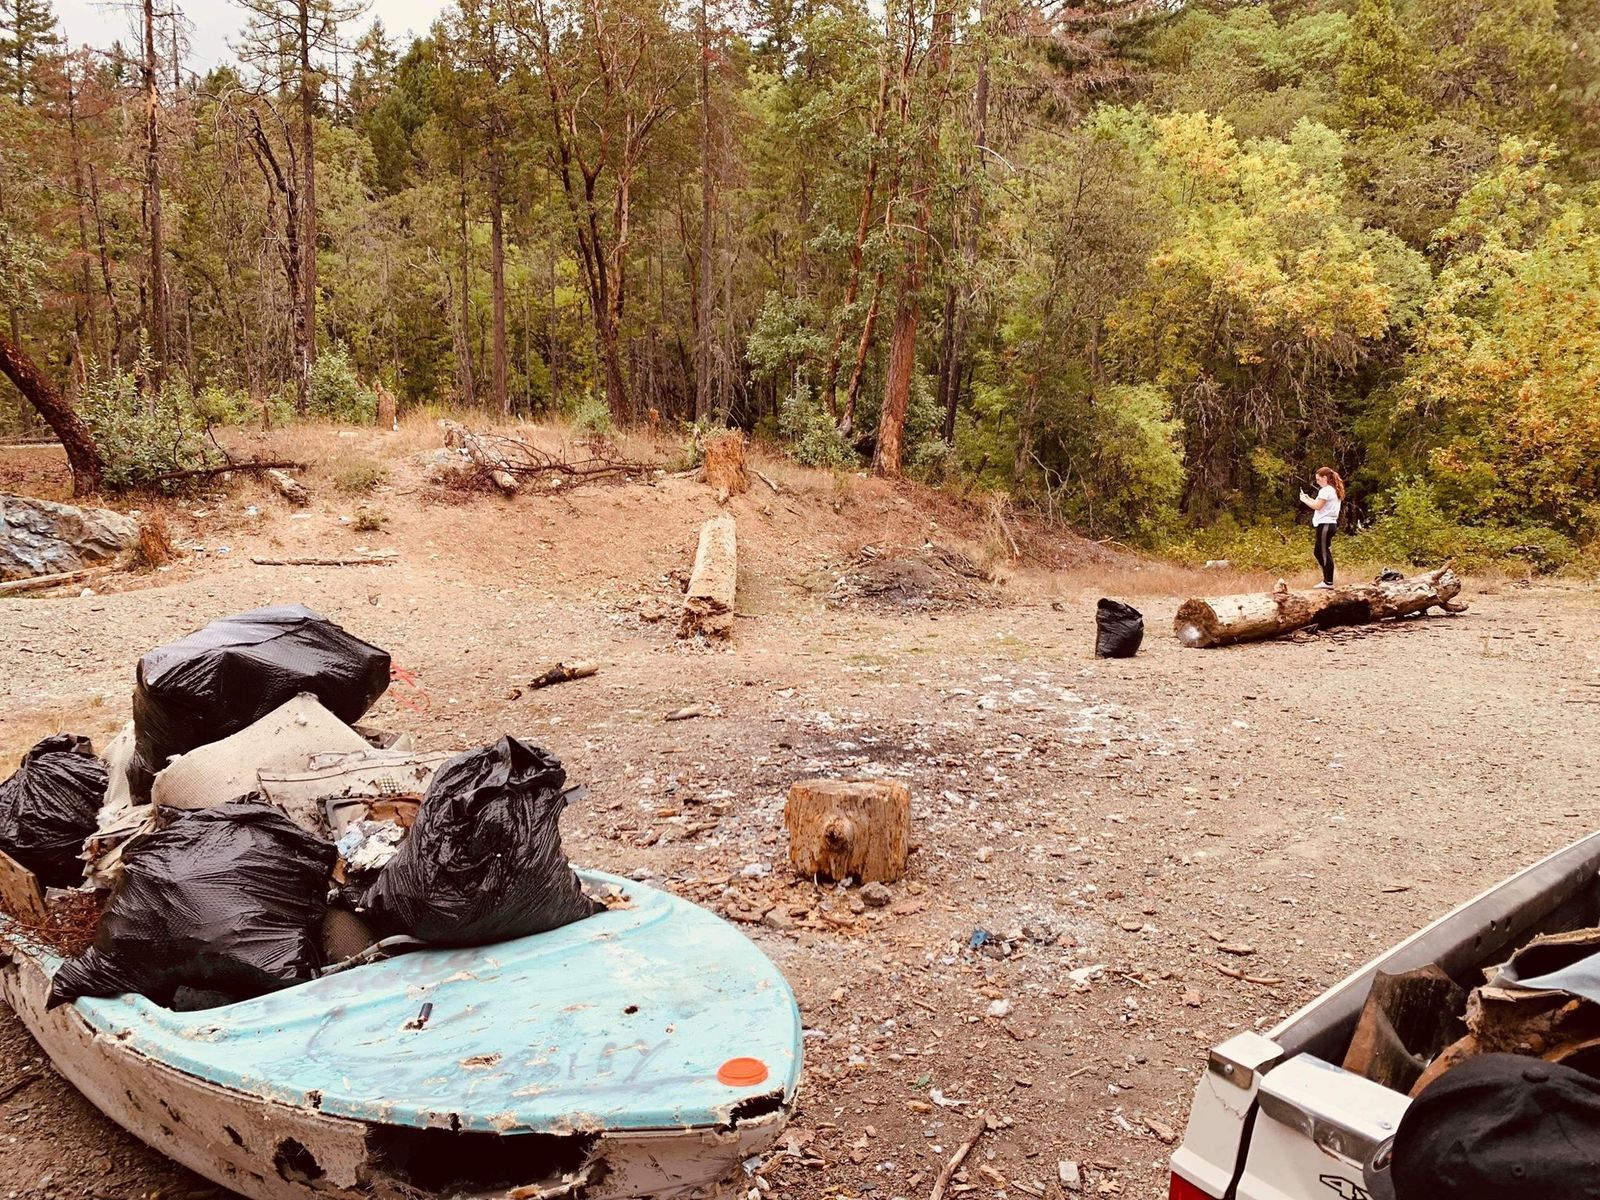 Garbage the Oregon Border Patrol found in the forest. (Courtesy: Sam Watson){ }